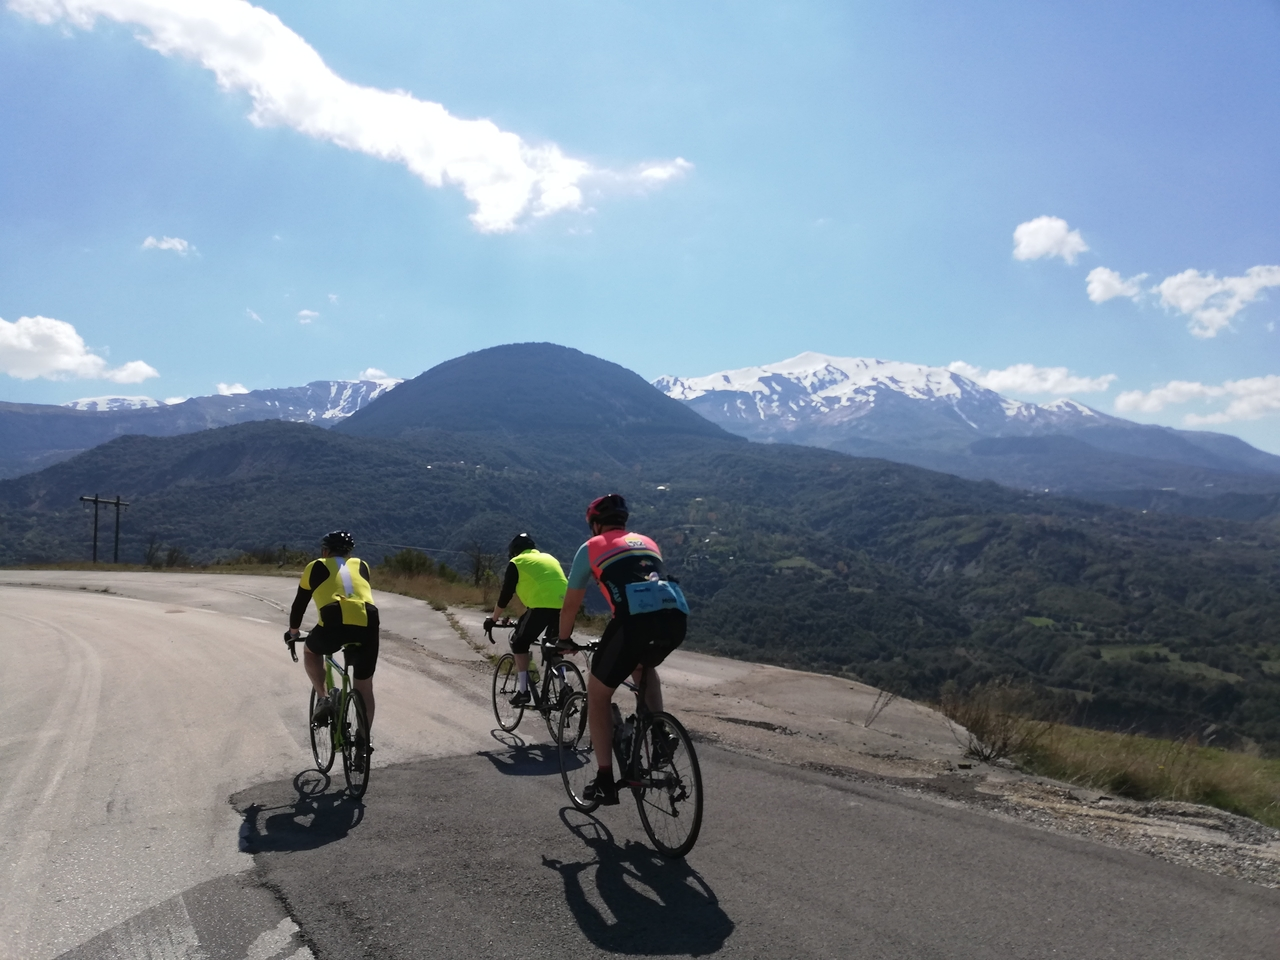 From Preveza to Thessaloniki via the edge of the Pindus Mountains and Mount Olympus. An exciting mix of Alpine-esque mountain roads, winding valley roads and sections along the Mediterranean coast, this ride has it all!